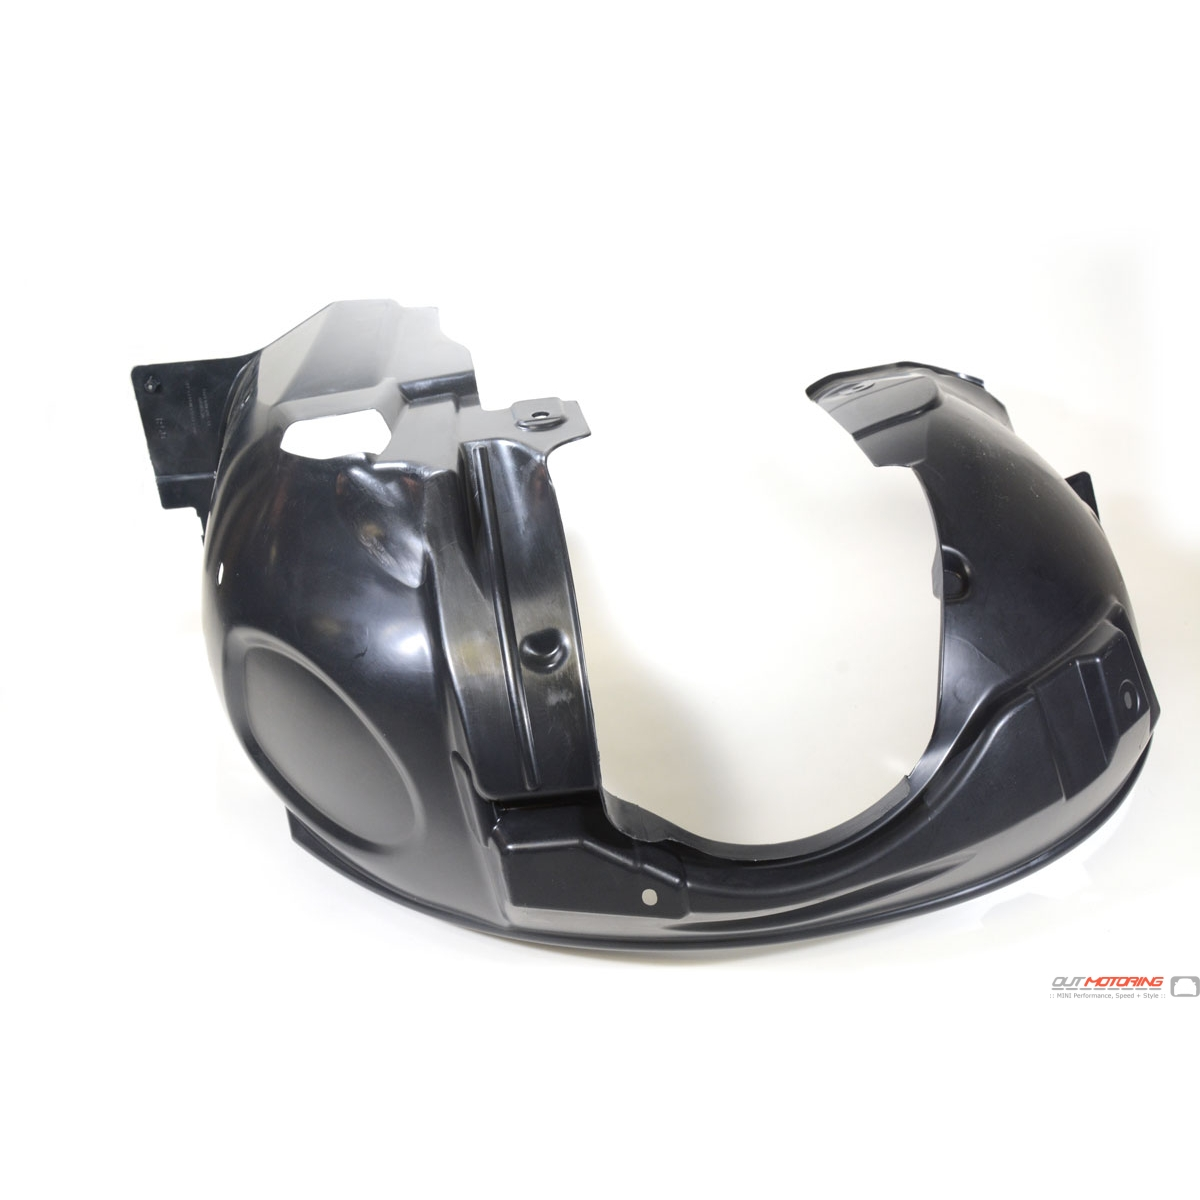 Sensational 51711486198 Wheel Well Liner Front Driver Mini Cooper S Door Handles Collection Olytizonderlifede